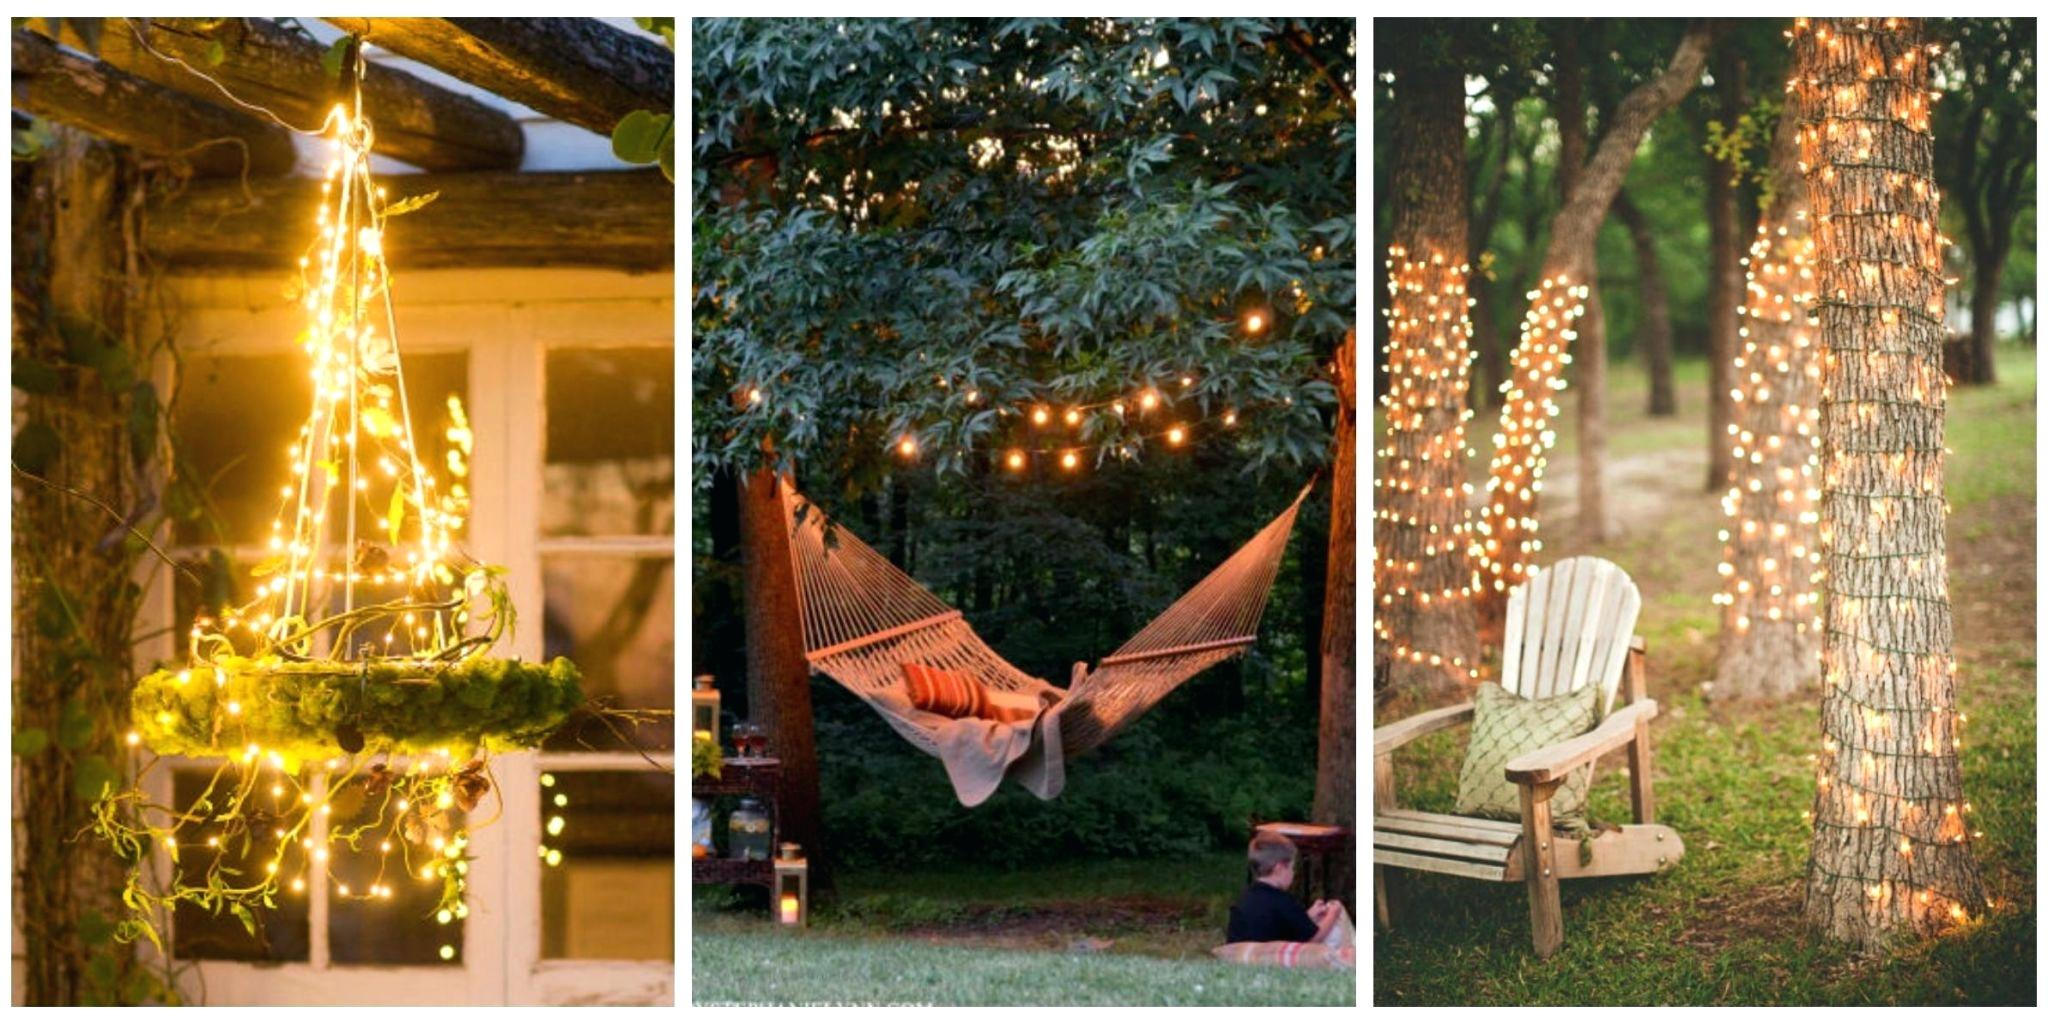 backyard-lighting-ideas-for-party-delectable-landscape-trees-pinterest-outdoor-pictures-pool-decks-depot-best-patio-lights